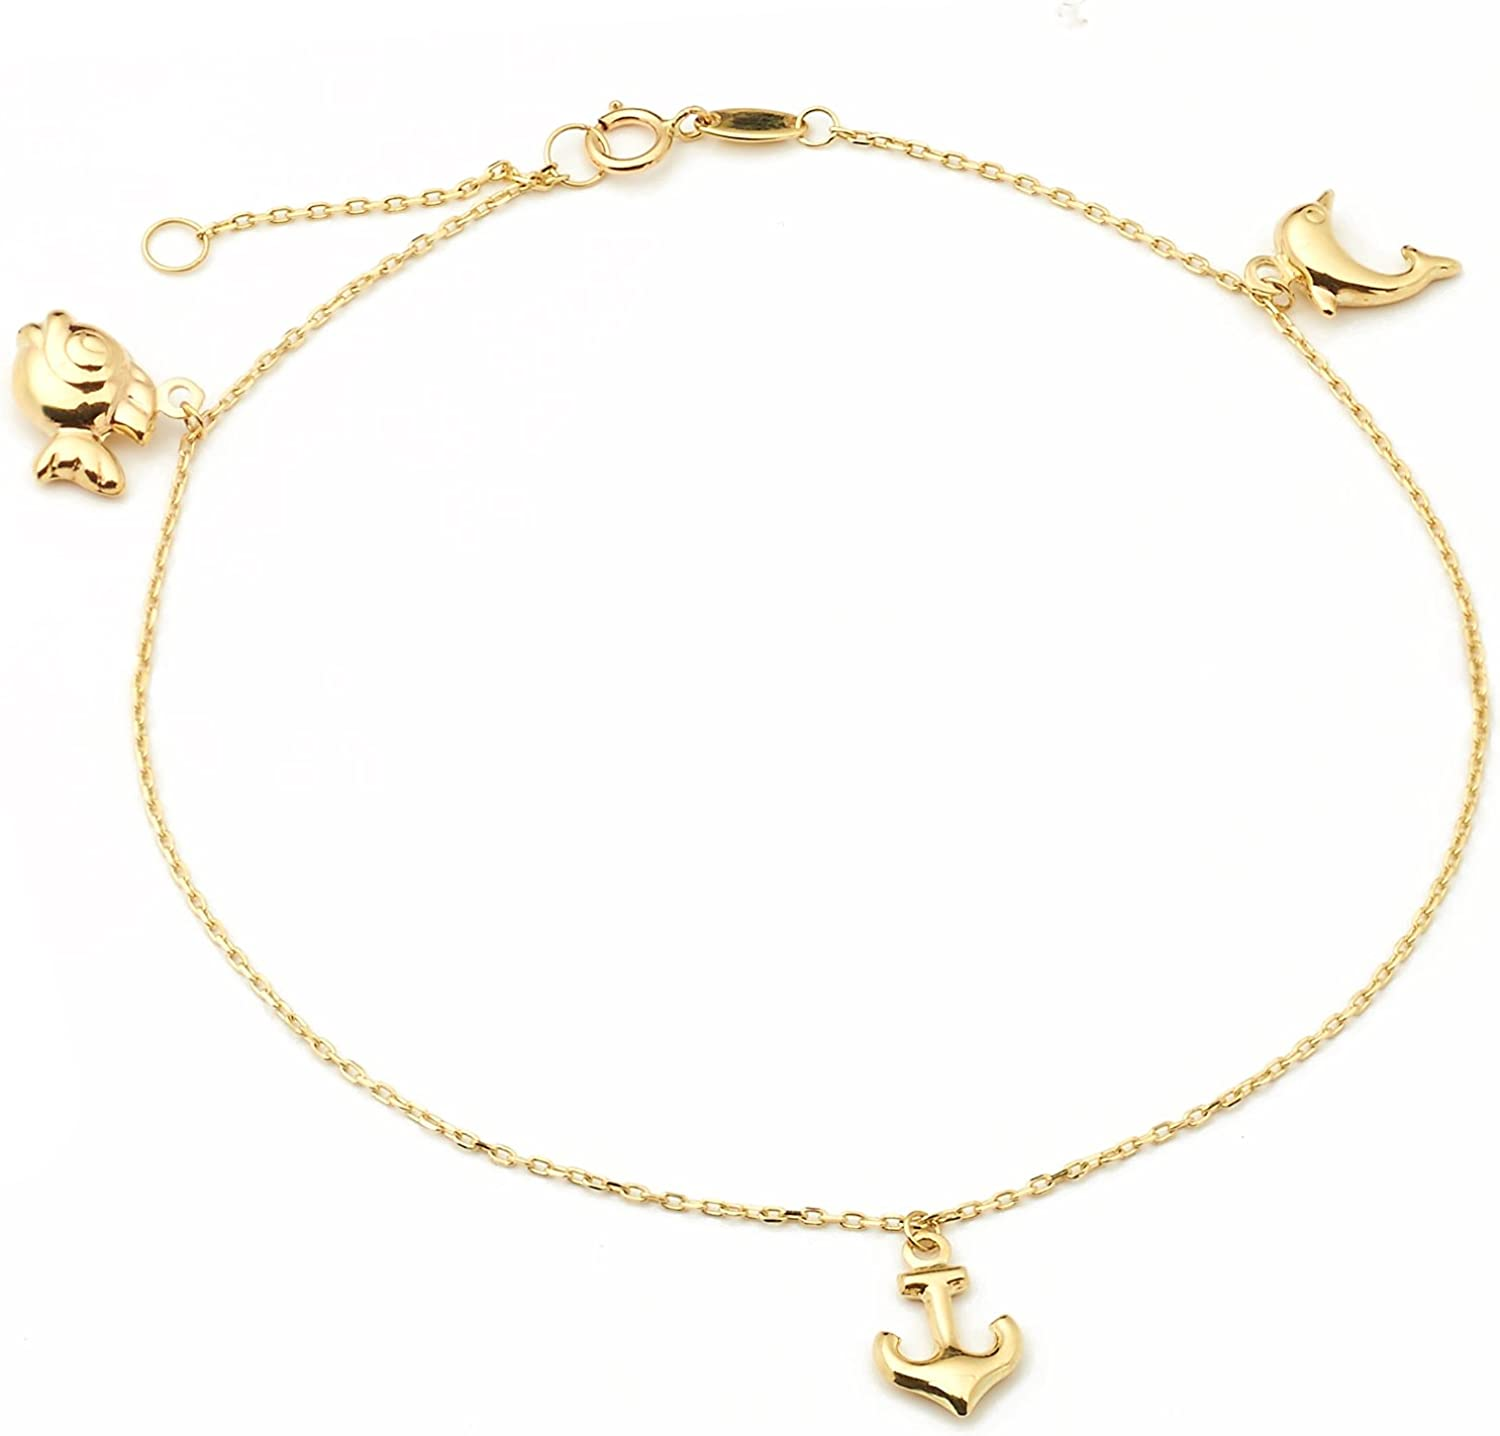 14K Solid Yellow Gold Heart Sun Moon Dolphin Ribbon Bracelet Fish Polished Charm Rolo Chain Link